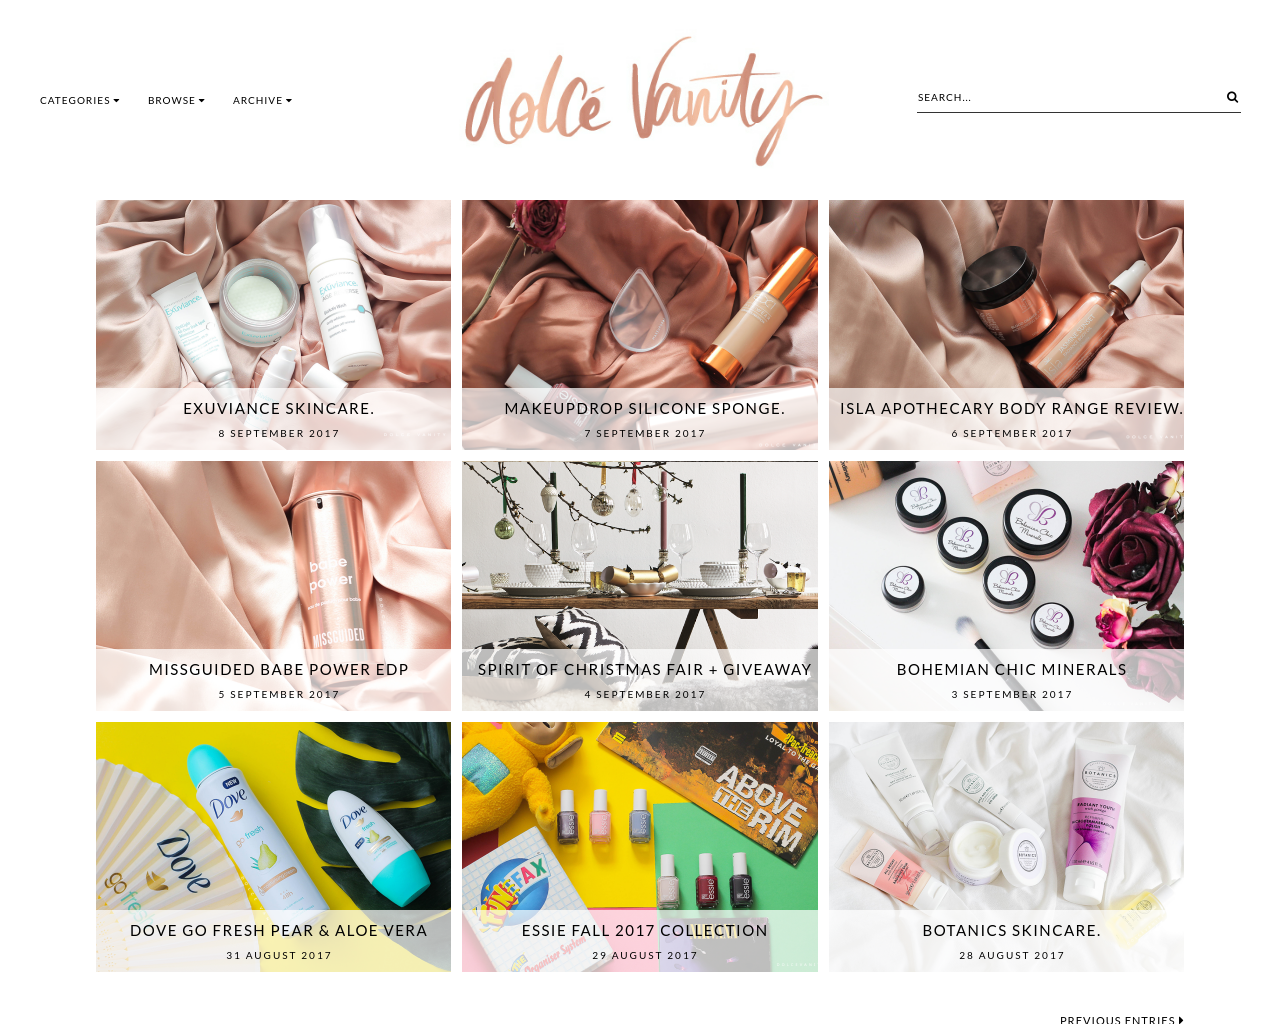 Dolce-Vanity-Advertising-Reviews-Pricing